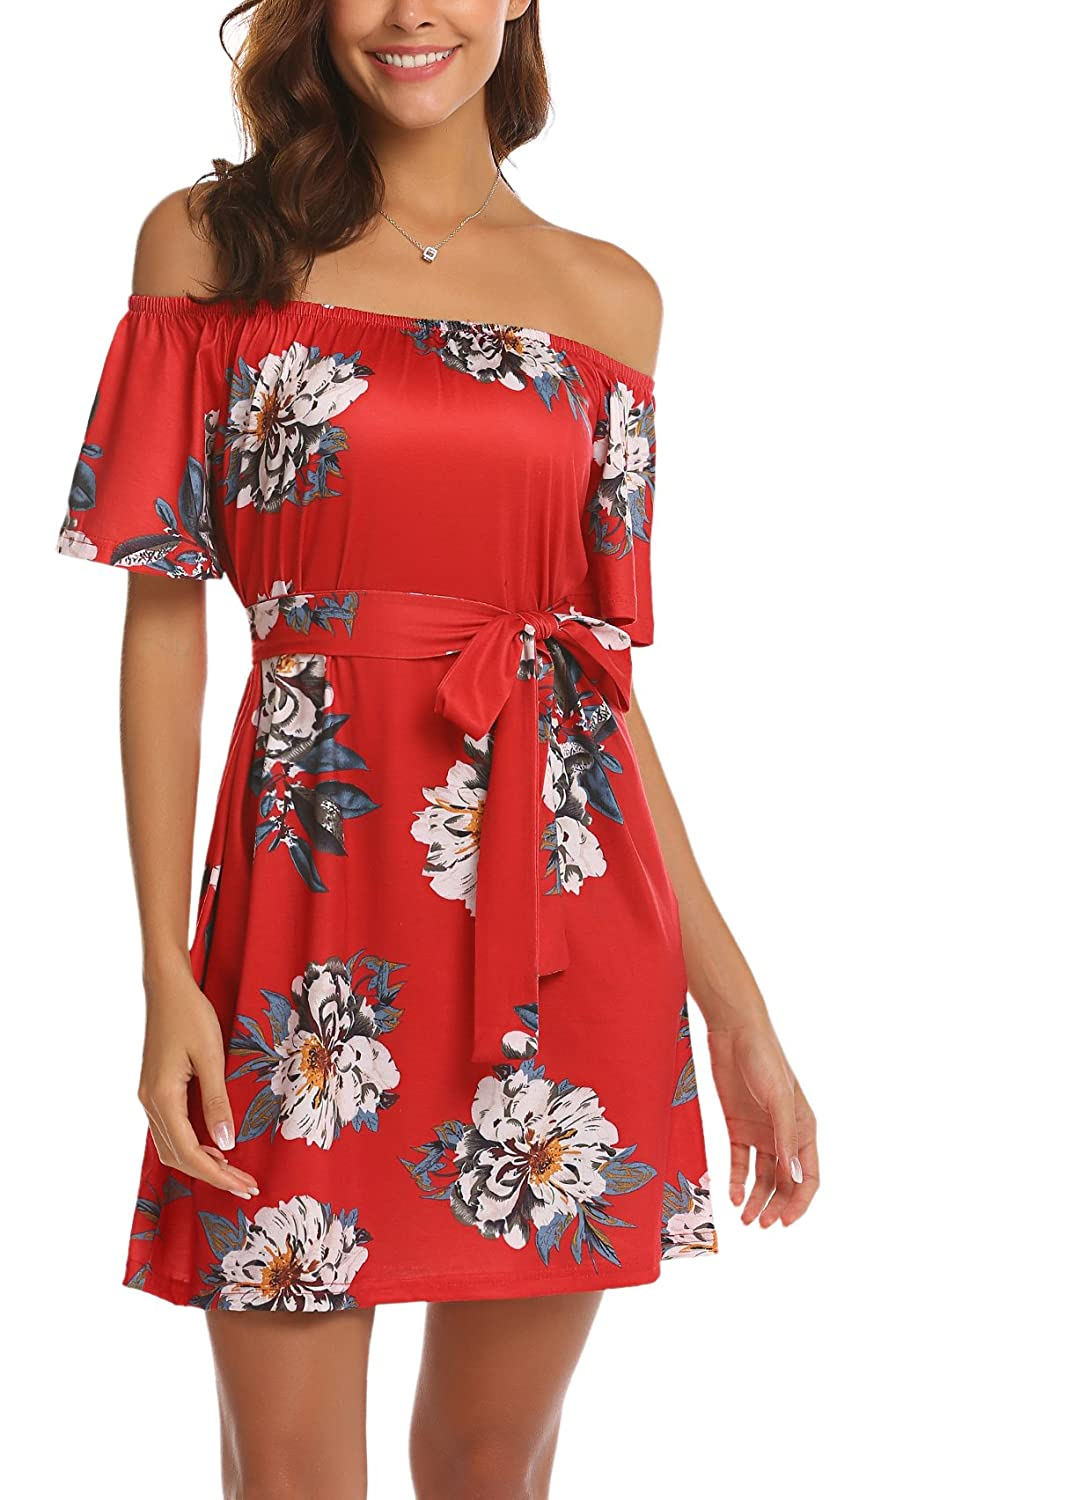 fcf6496e314df Features: vintage floral print/ sexy off shoulder strapless/ slash neck/  flare sleeve/ lace up wasit/ above knee short dress.